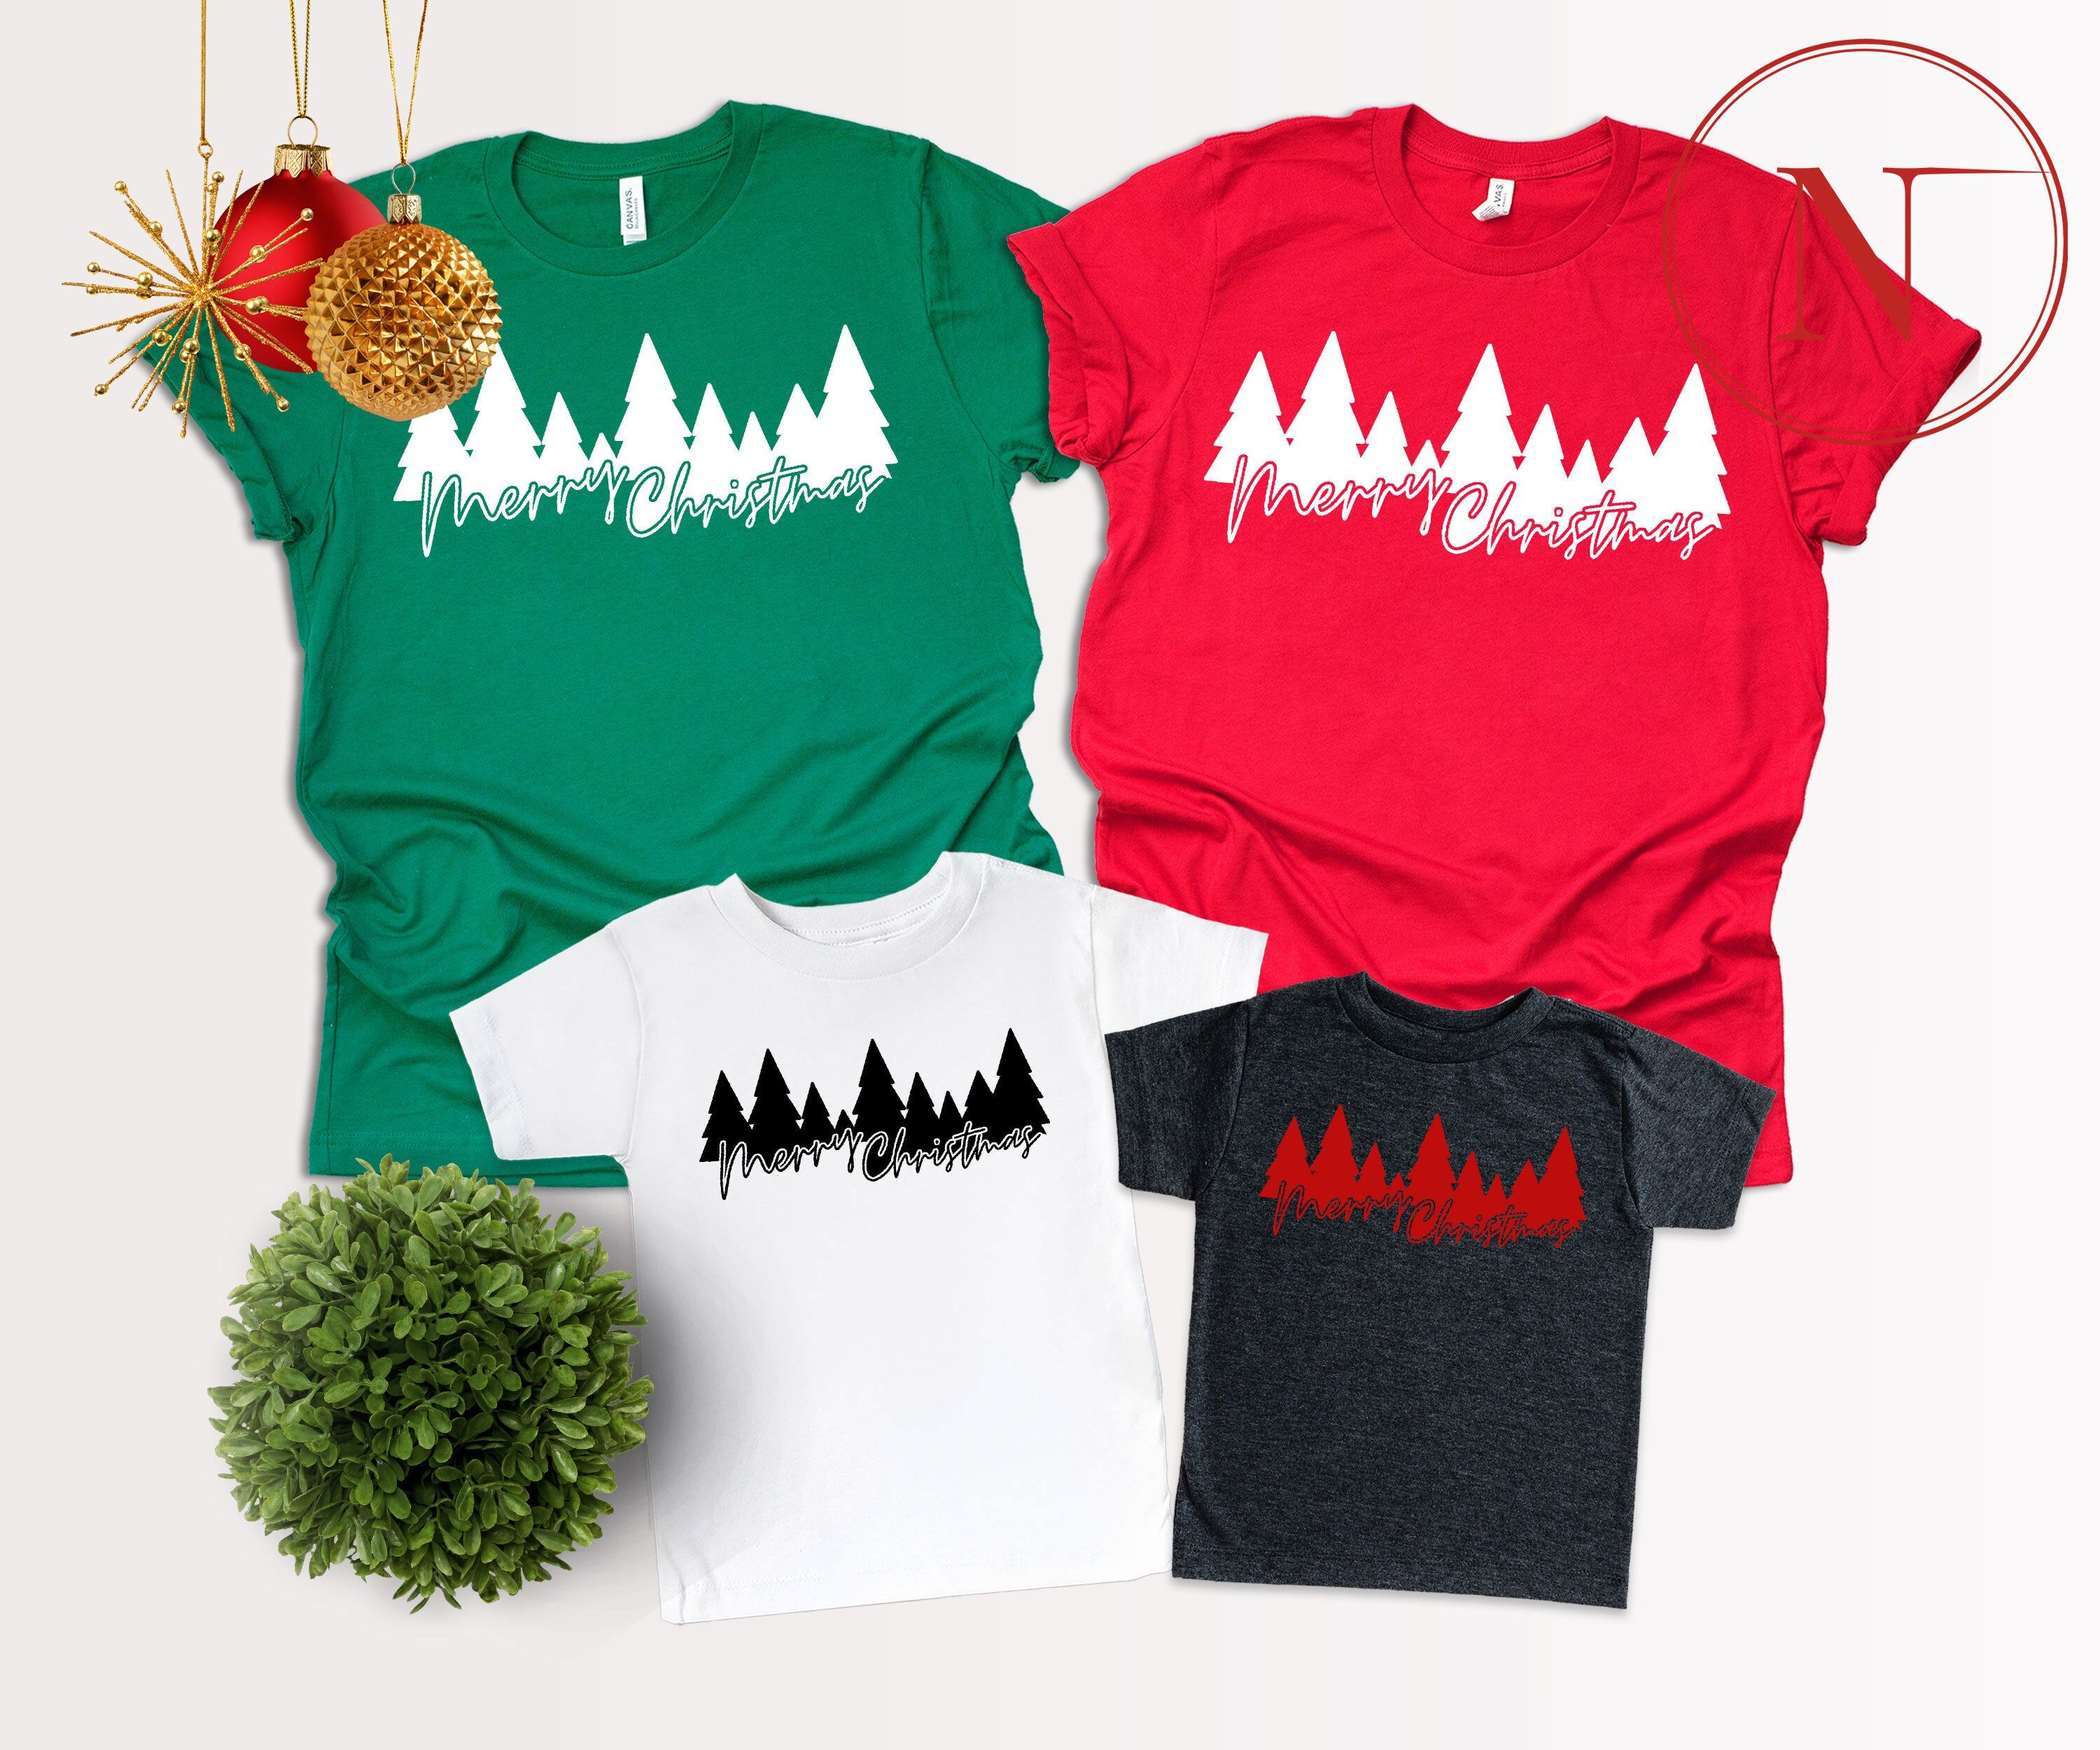 """""""Christmas Trees, Merry Christmas T-Shirt, Pretty Christmas Tee, XMas Shirt, Cute Merry Xmas Gift Hello! Welcome to our store, We are glad to see you here. We are sure you will love our designs. We have 7/24 customer support if you have any questions please contact us. HOW TO ORDER- 1-) Please, Check and Review all Photos. 2-) Select Your T-shirt Color. 3-) Select Your T-shirt Size. 4-) Choose Your Quantity as much as you want. 5-)Please click the \""""Proceed to Check Out\"""" button 6-)Finally, your"""